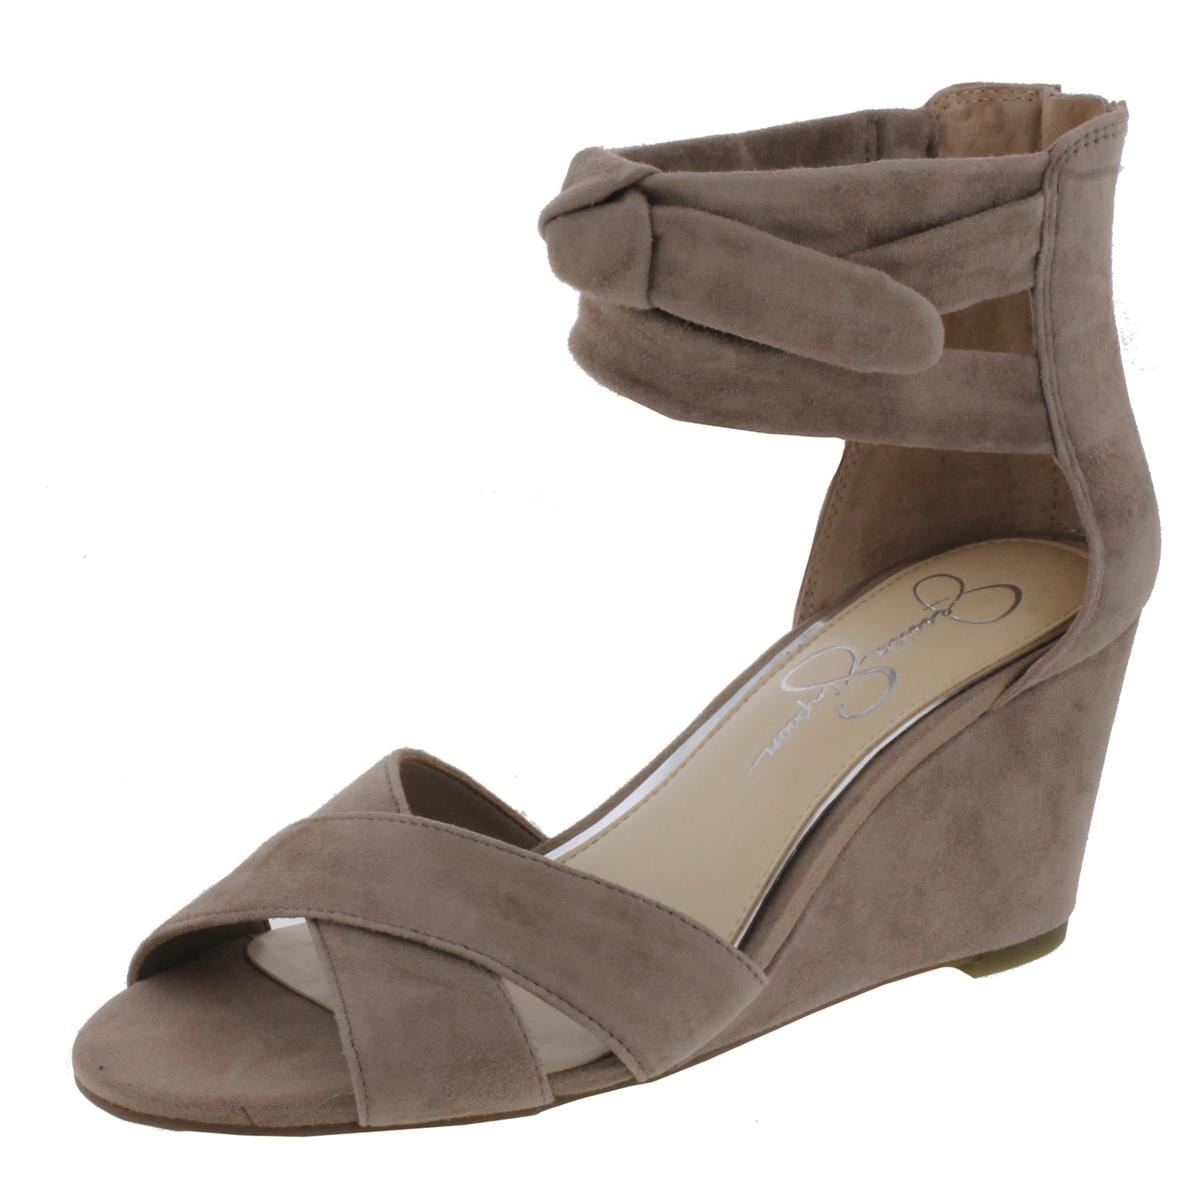 7f766db15acc Shop Jessica Simpson Womens Cyrena Wedge Sandals Criss-Cross Open Toe -  Free Shipping On Orders Over  45 - Overstock.com - 21656204